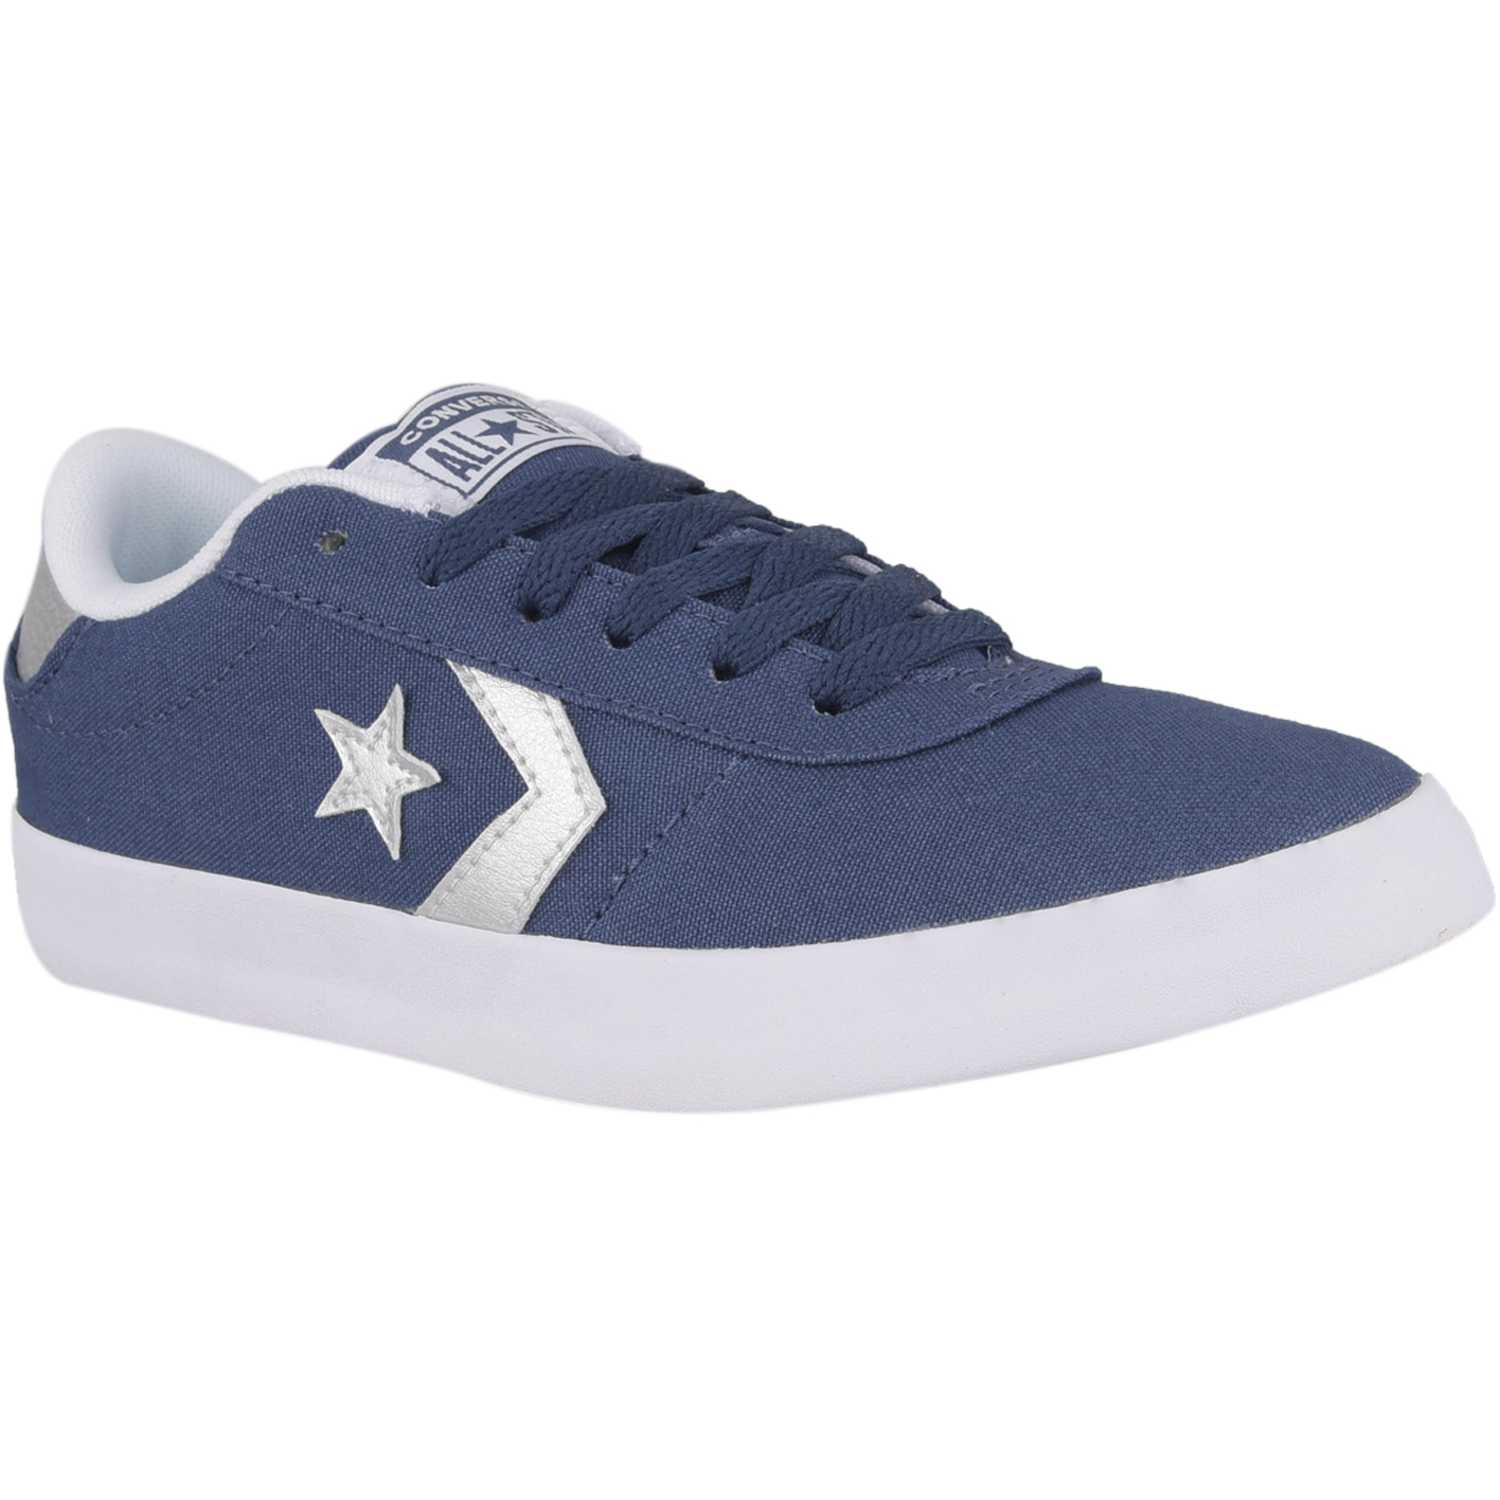 Zapatilla de Mujer Converse Azul / blanco point star canvas metallic